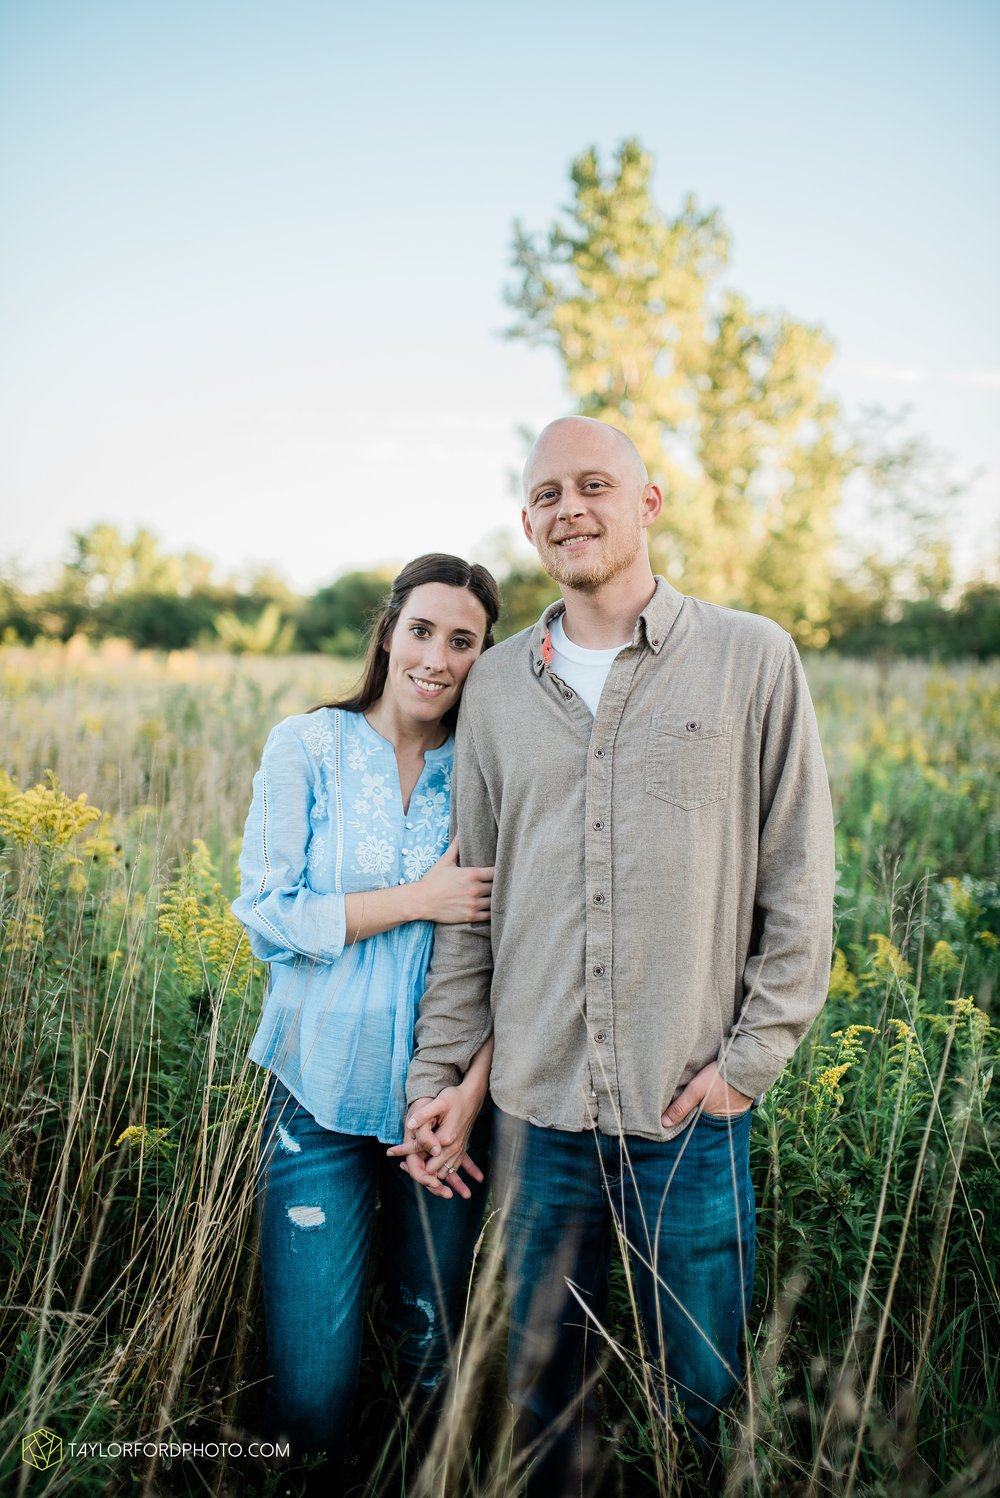 van-wert-ohio-late-summer-engagement-photographer-taylor-ford-photography_0358.jpg